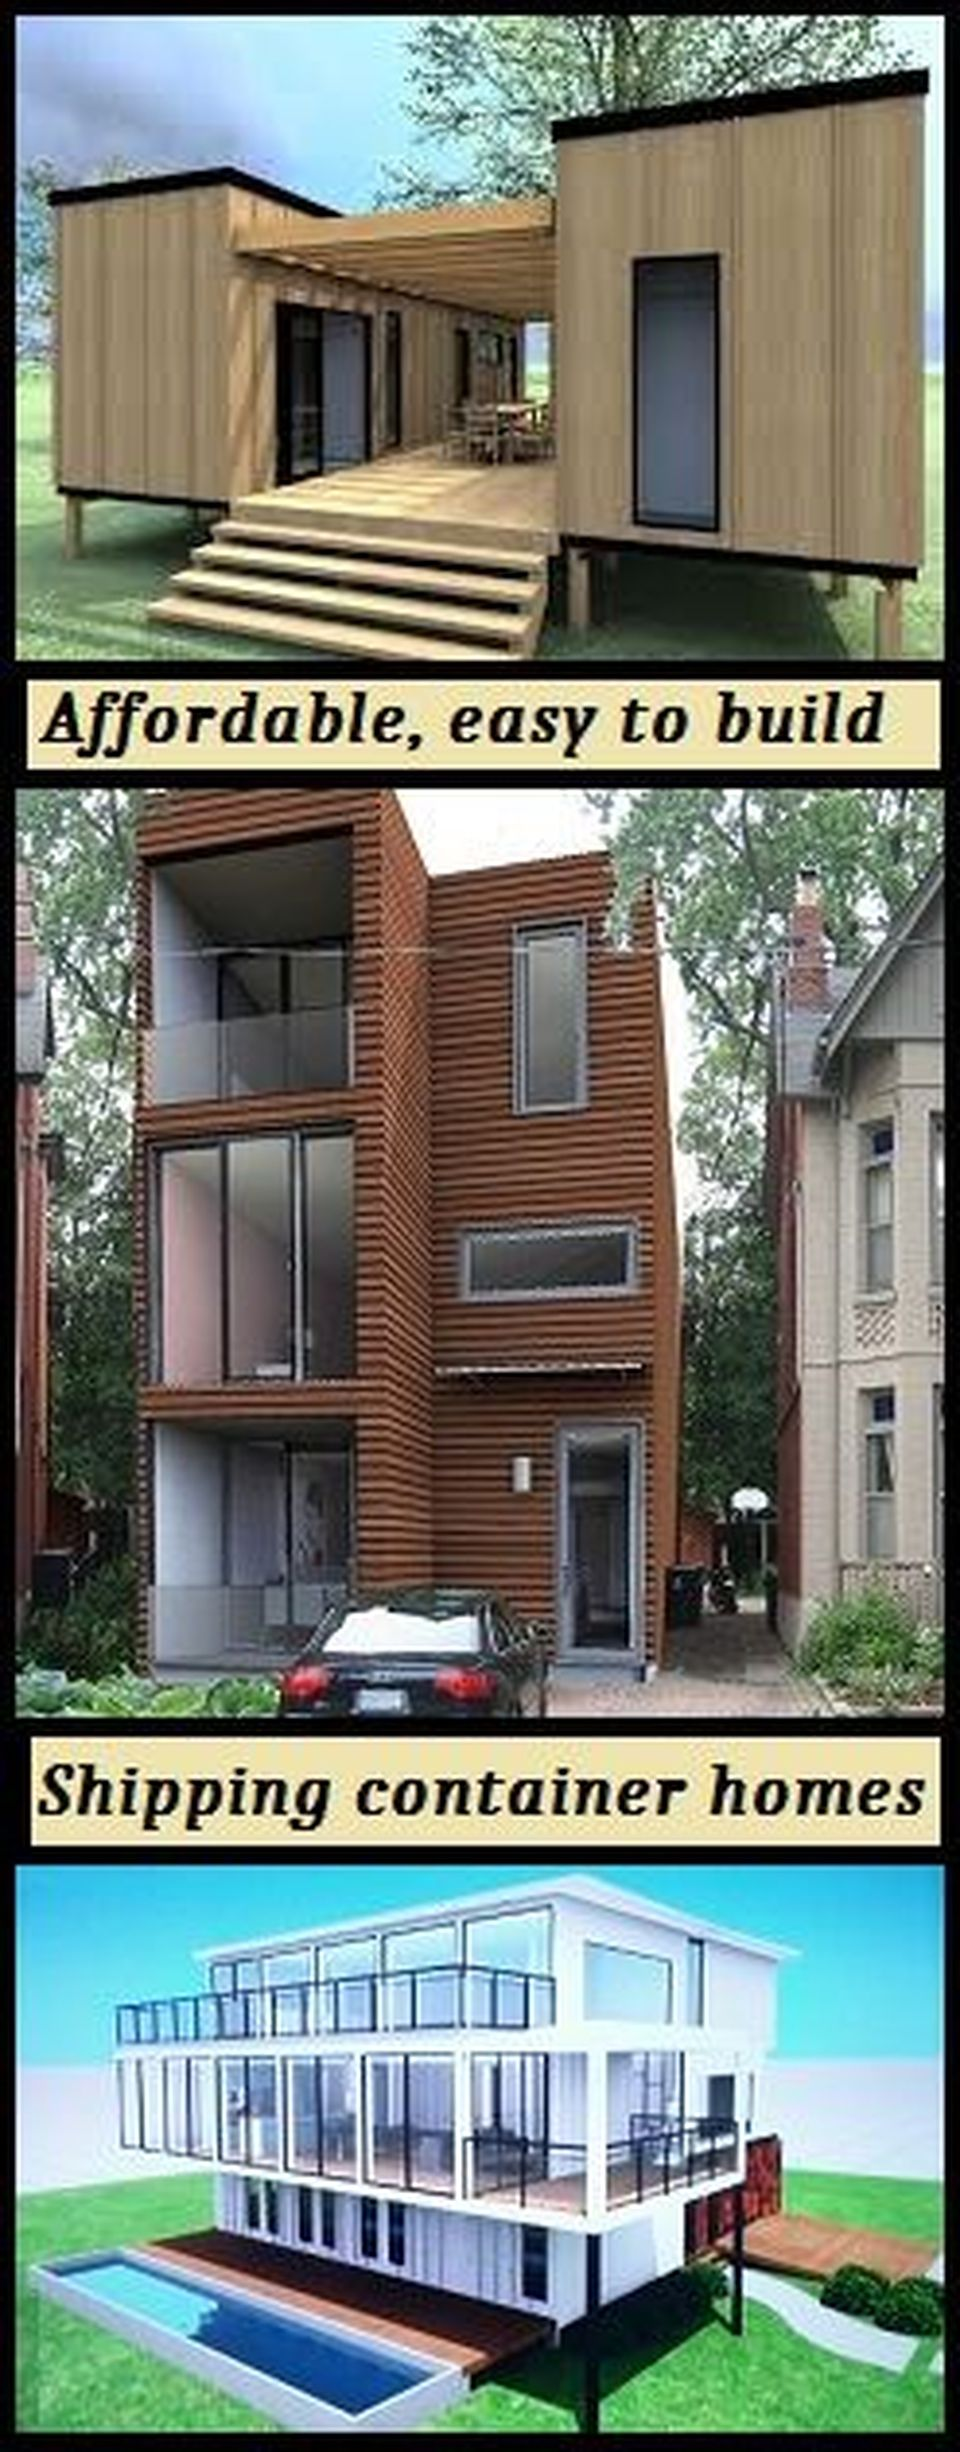 Best shipping container house design ideas 2